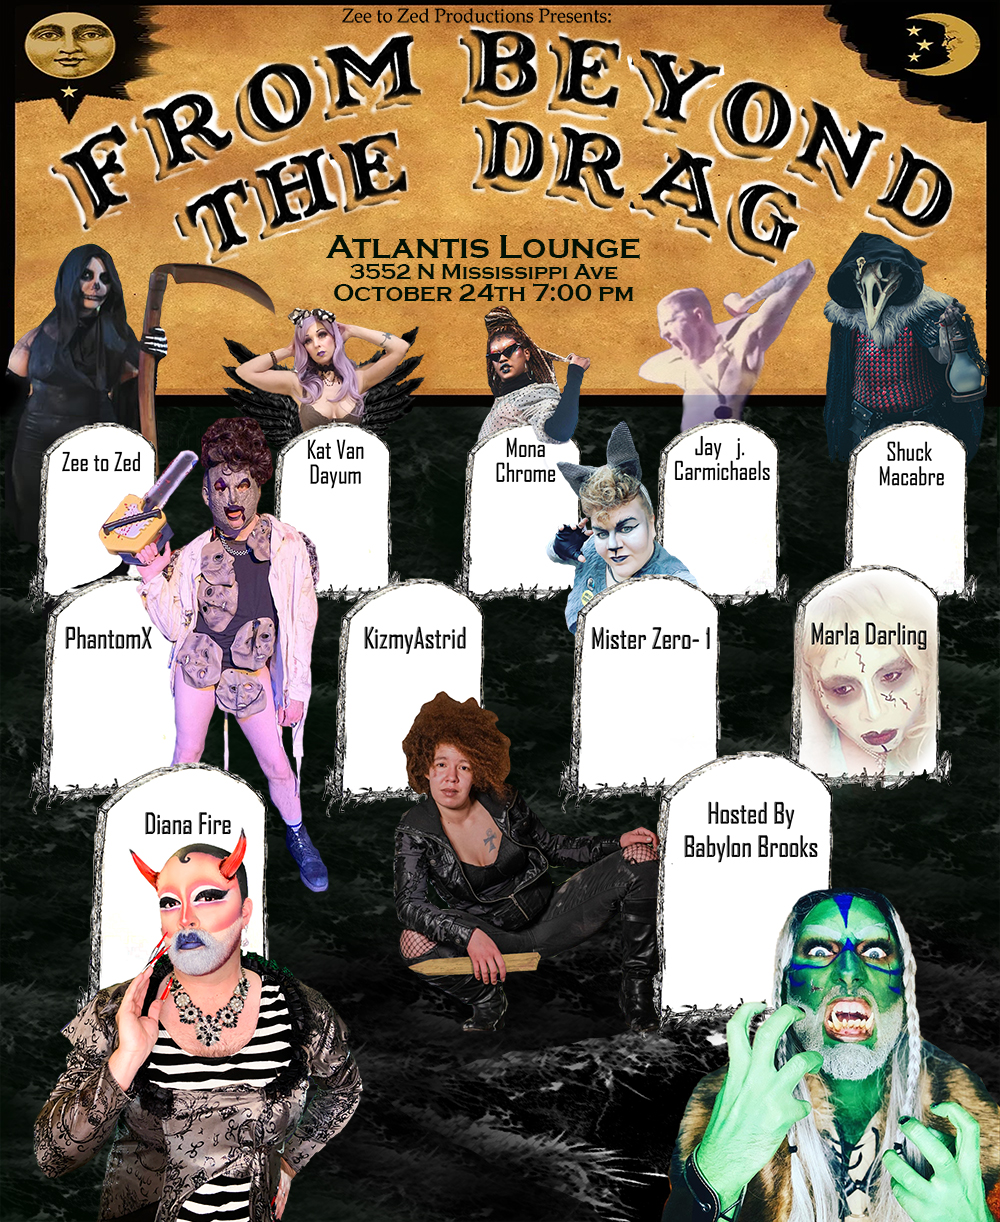 From Beyond the Drag